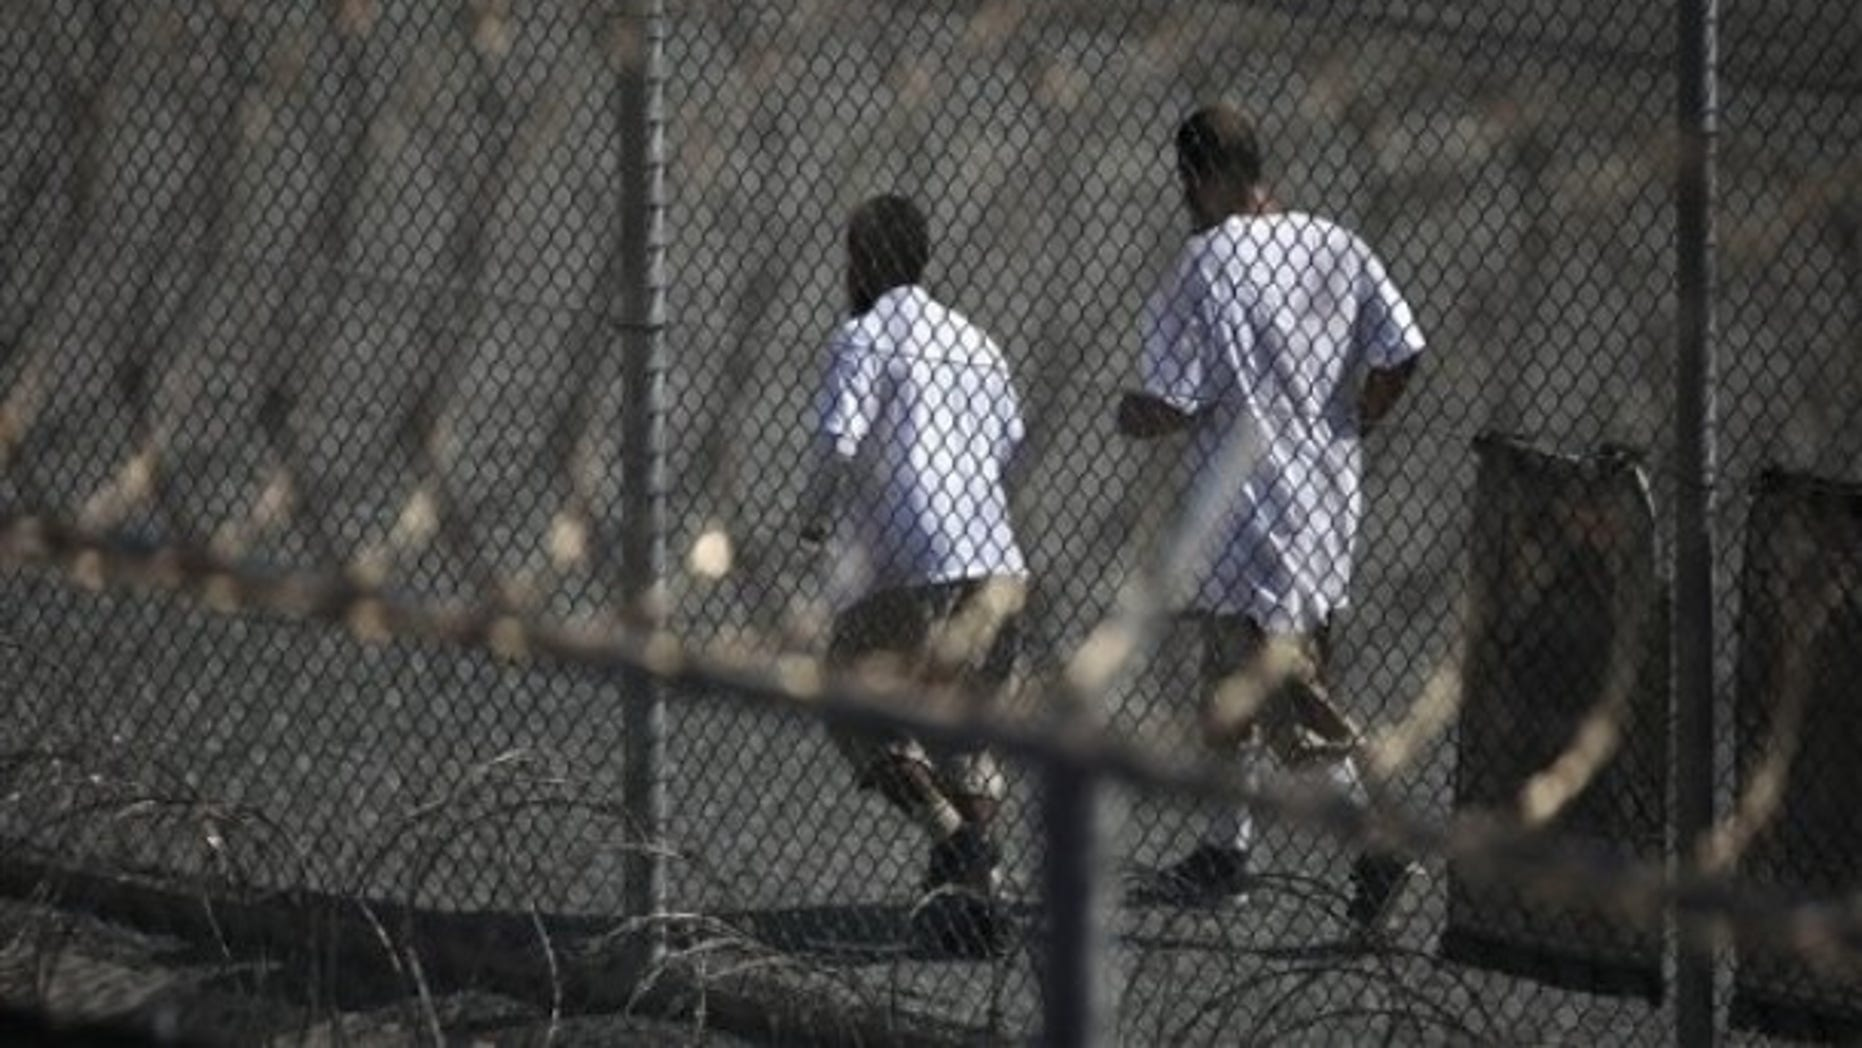 In this photo, reviewed by the U.S. military, Guantanamo detainees jog together inside a recreation area at Camp 6 high-security detention facility at Guantanamo Bay U.S. Naval Base, Cuba, Tuesday, March 30, 2010. (AP)